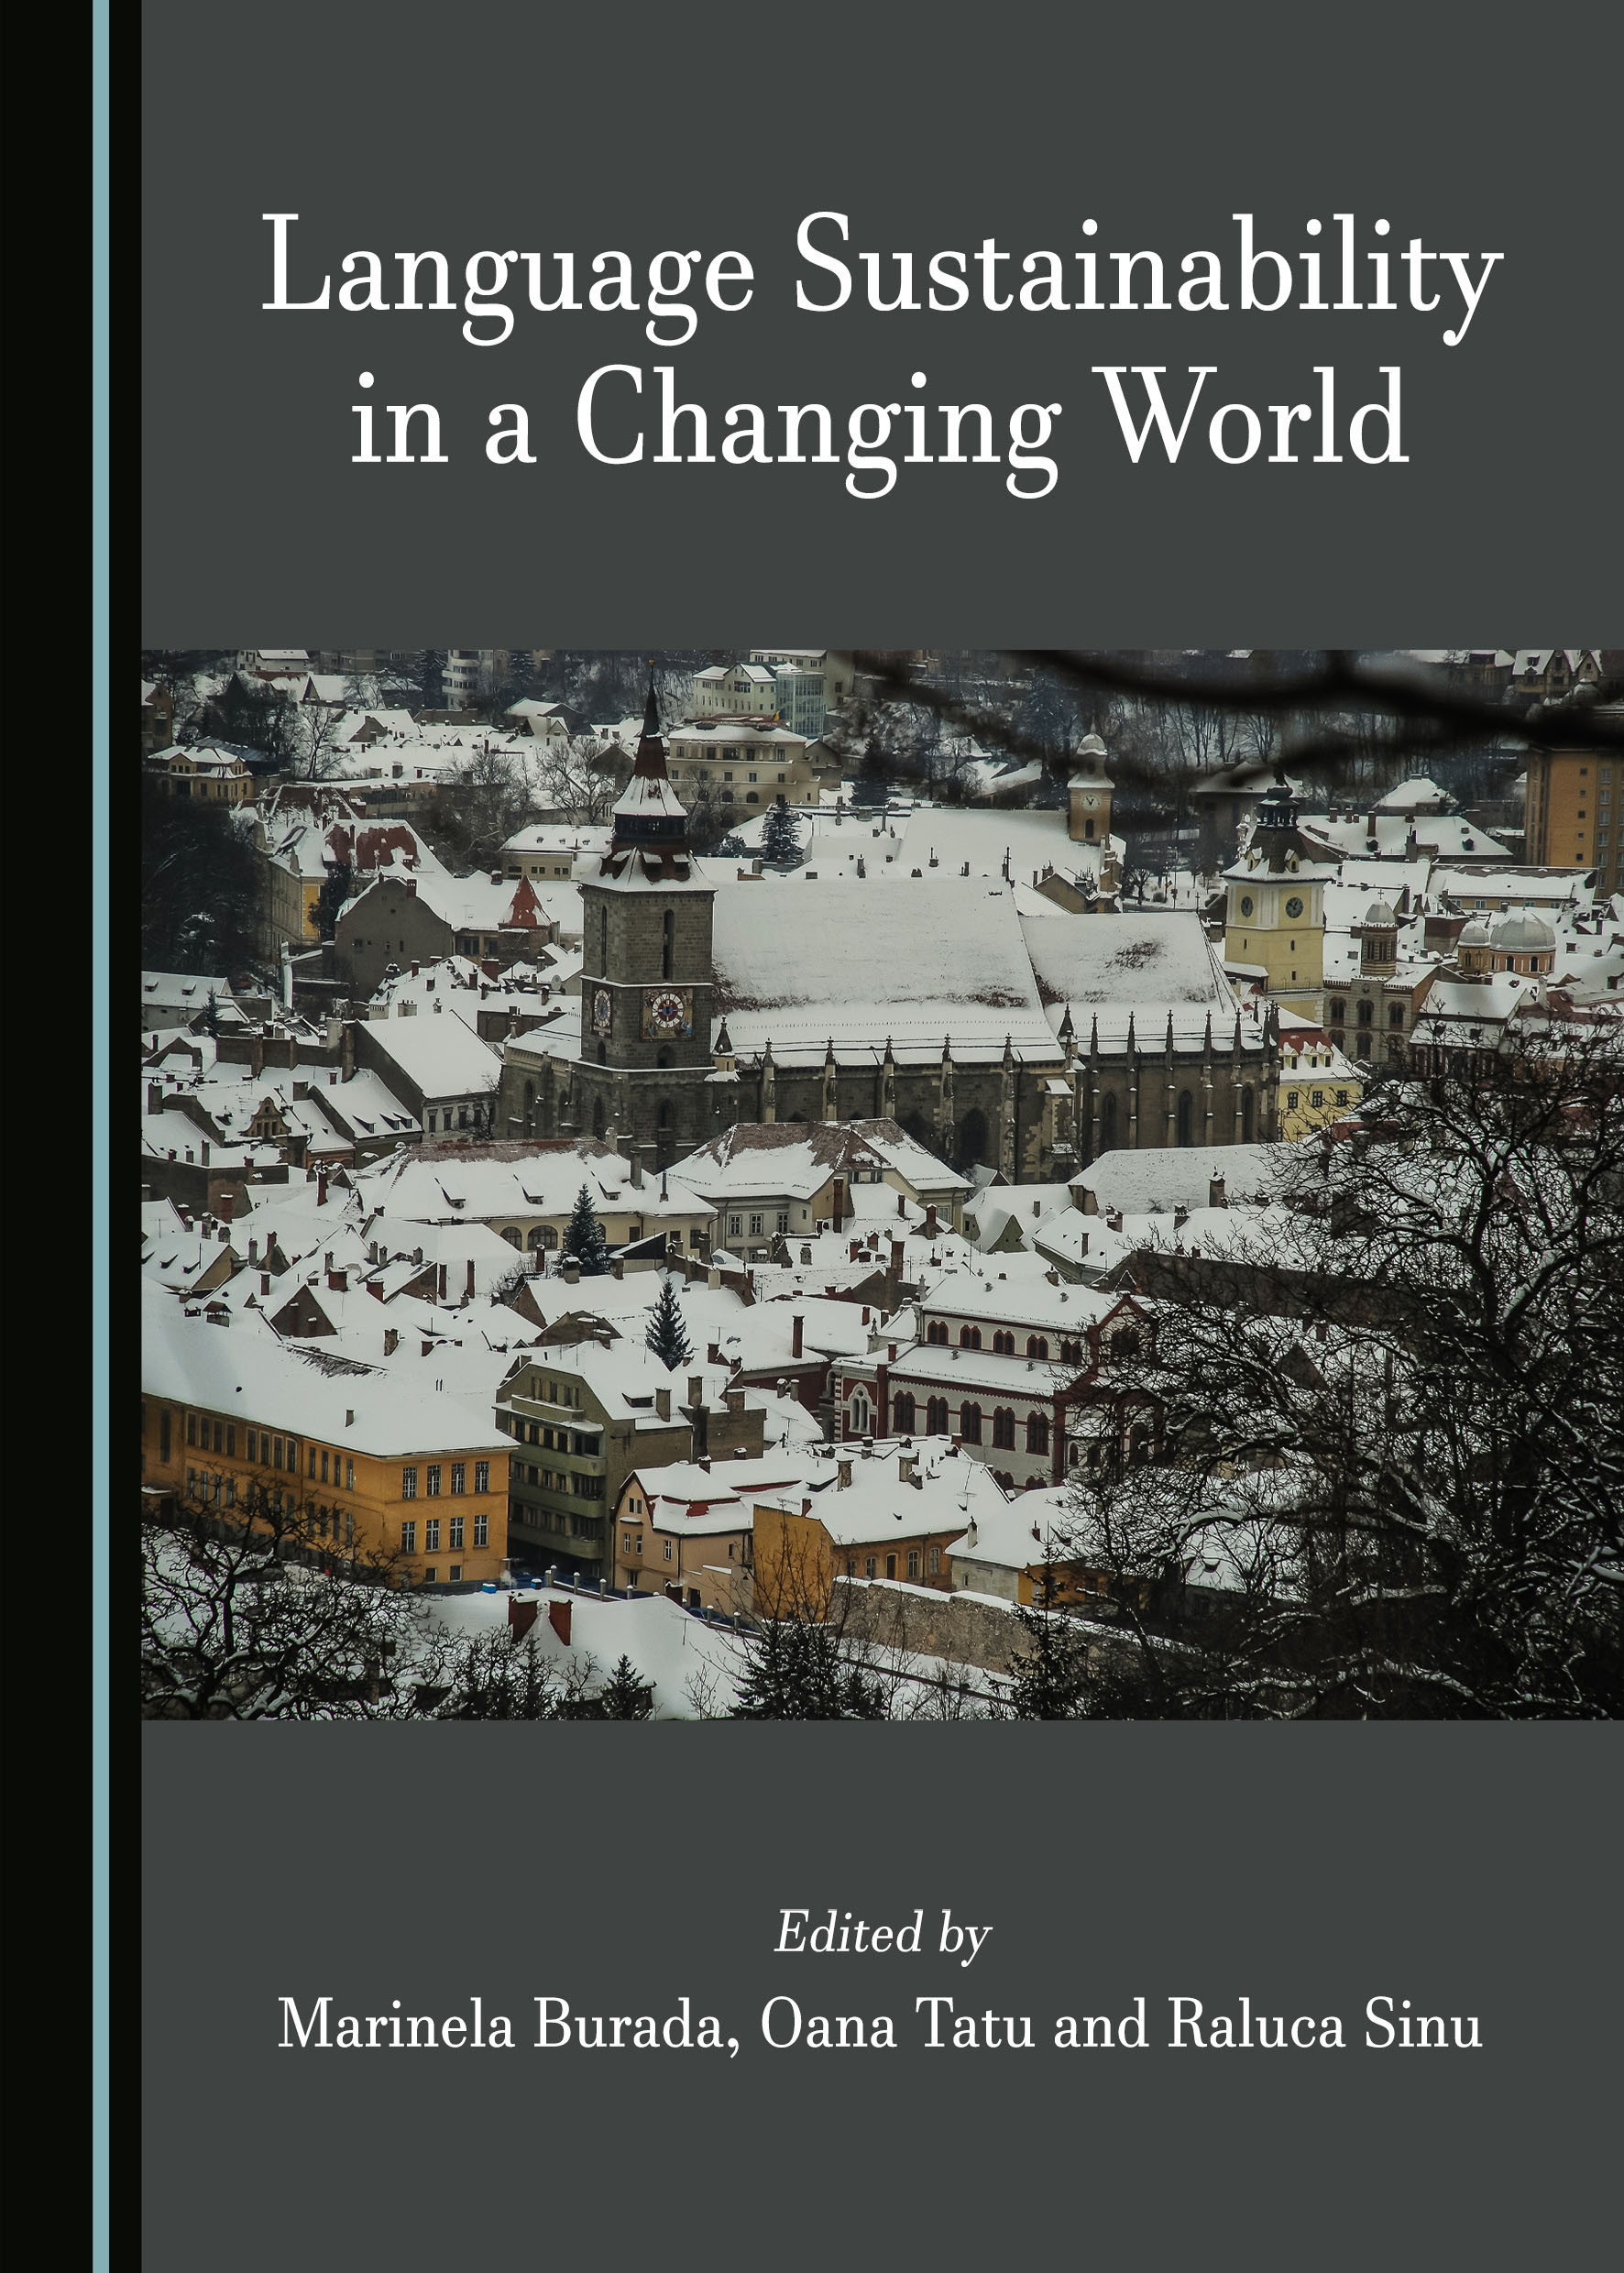 Language Sustainability in a Changing World